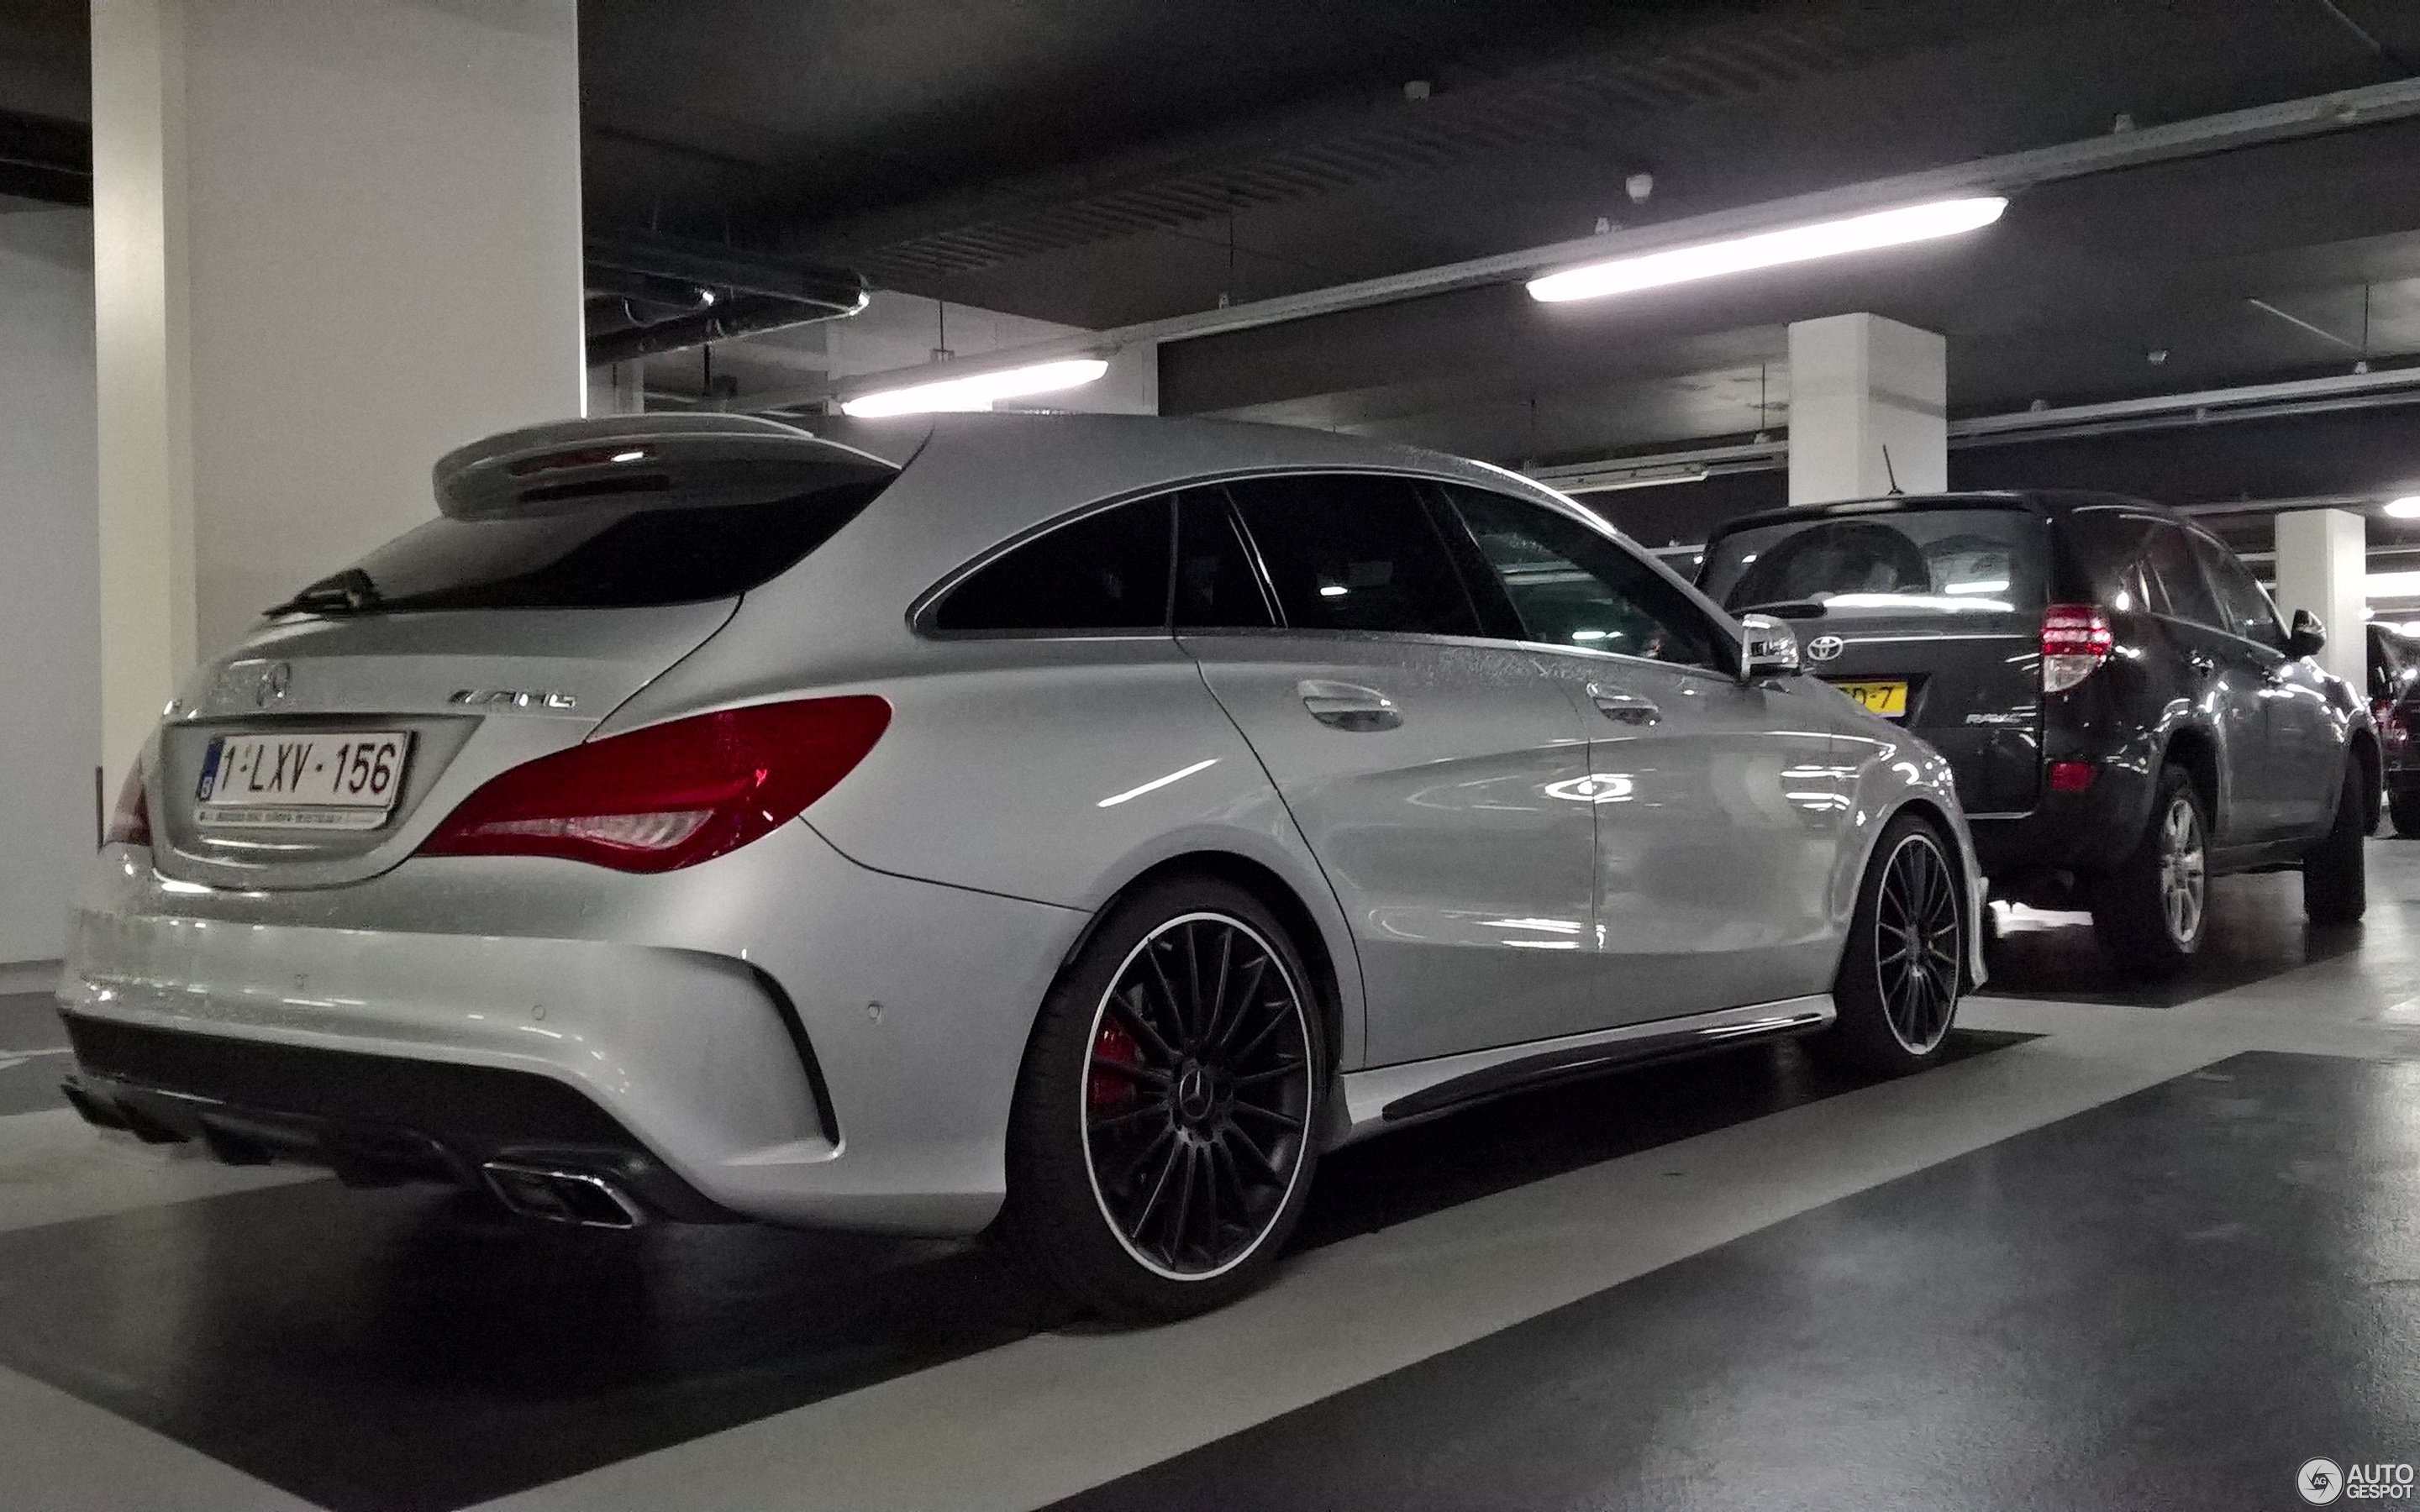 Mercedes Benz CLA 45 AMG Shooting Brake